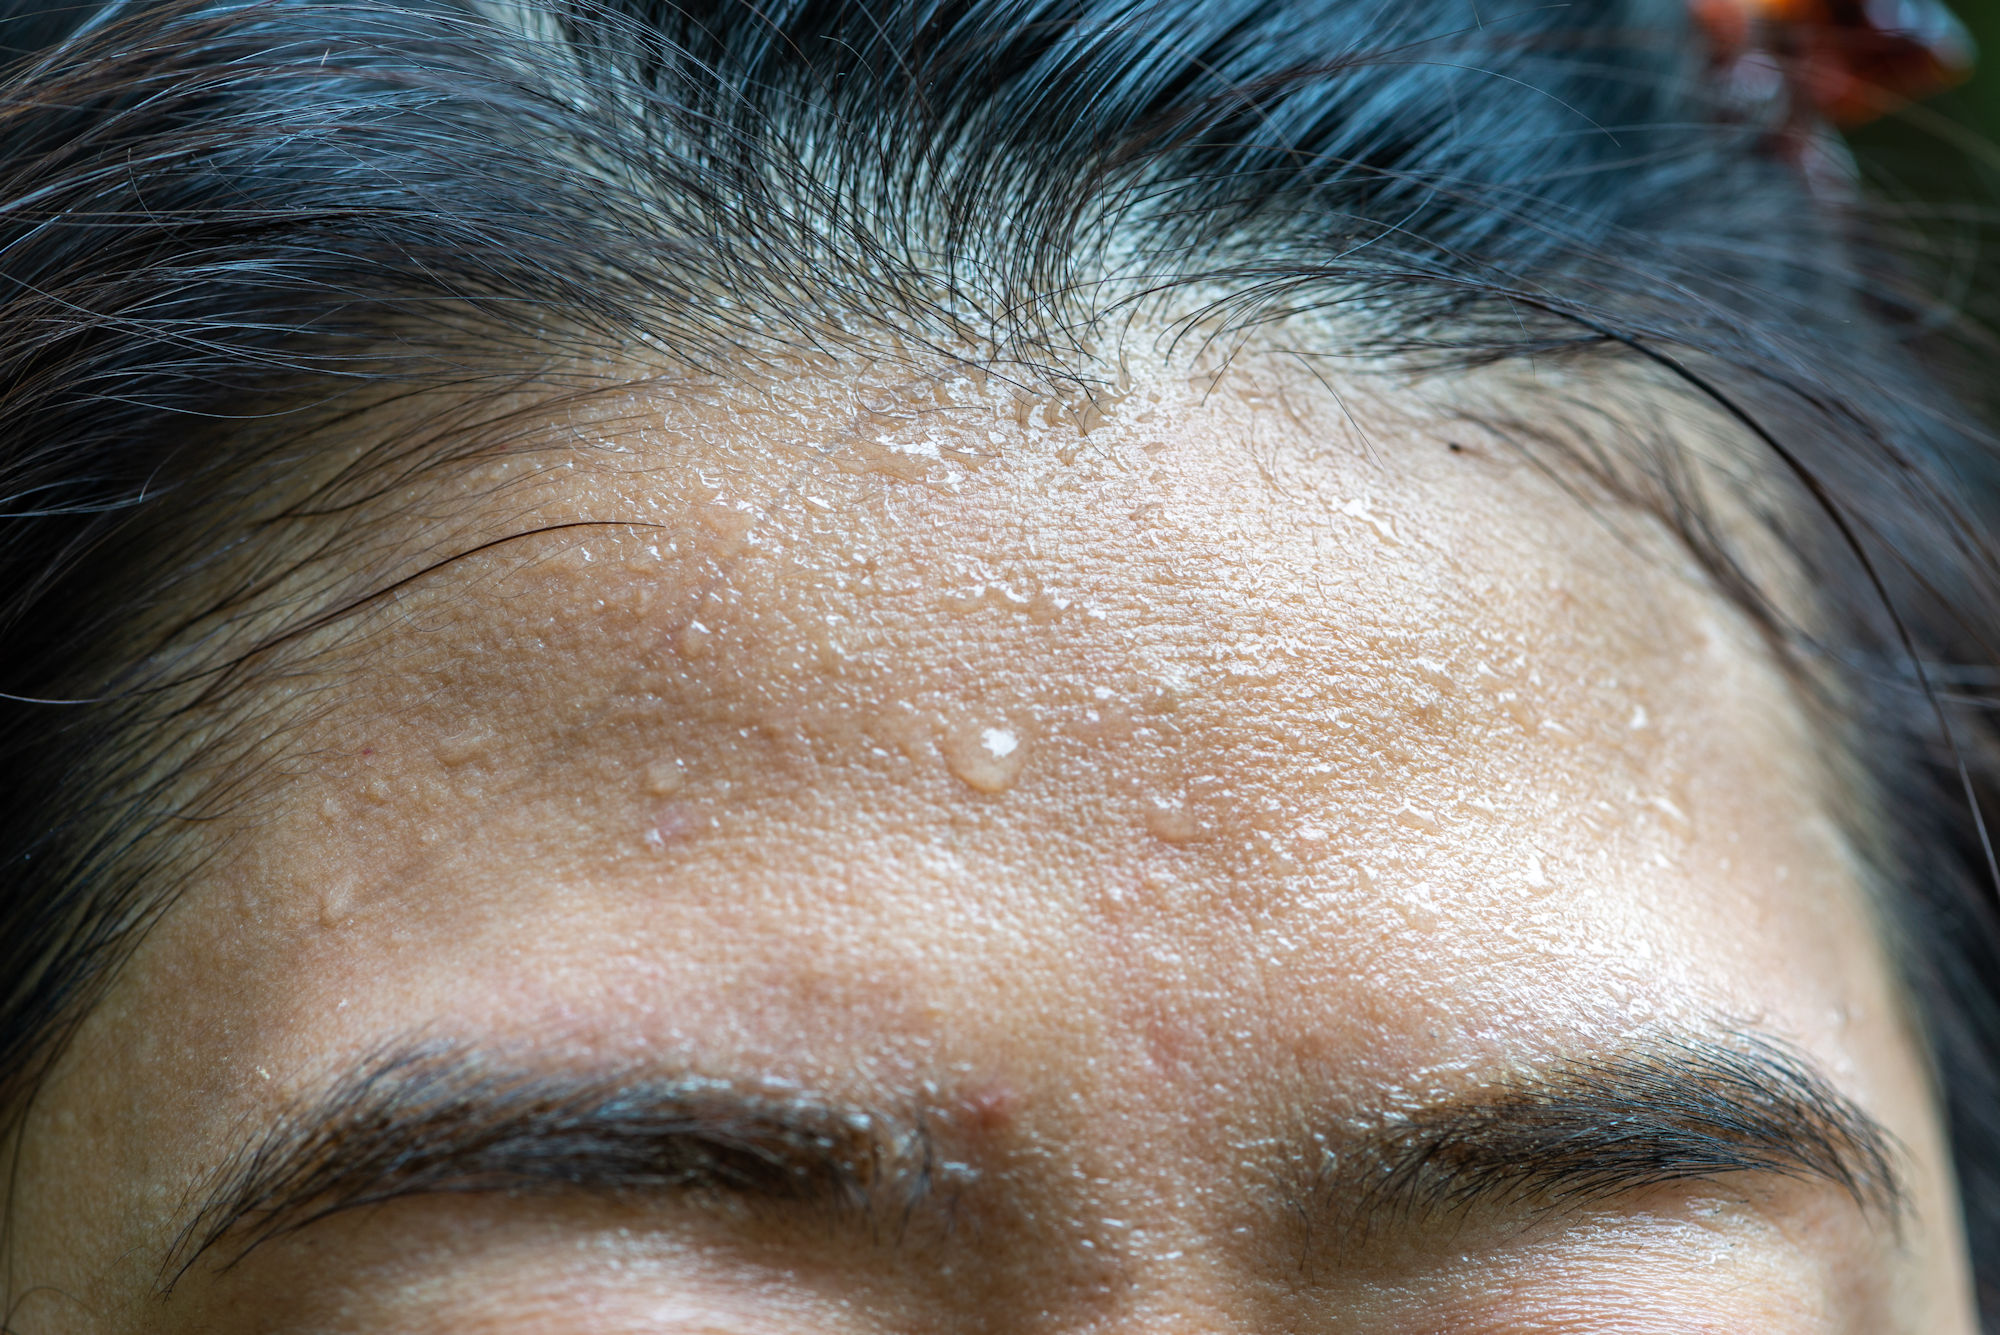 Hyperhidrosis facialis - excessive sweating in the facial area